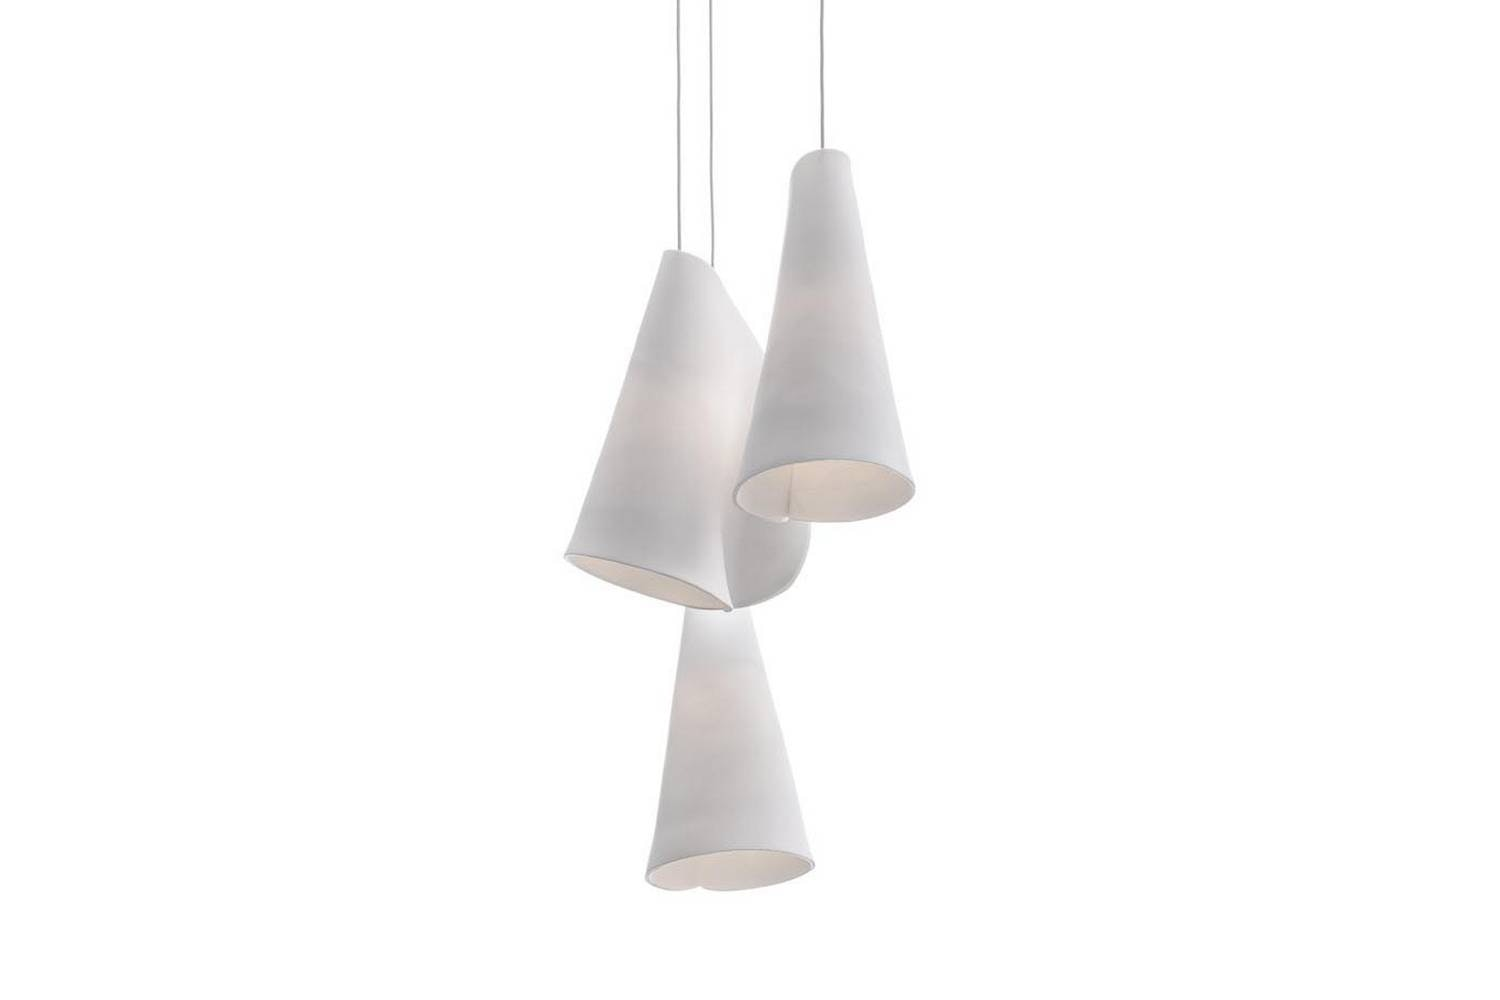 21.3 Suspension Lamp by Omer Arbel for Bocci